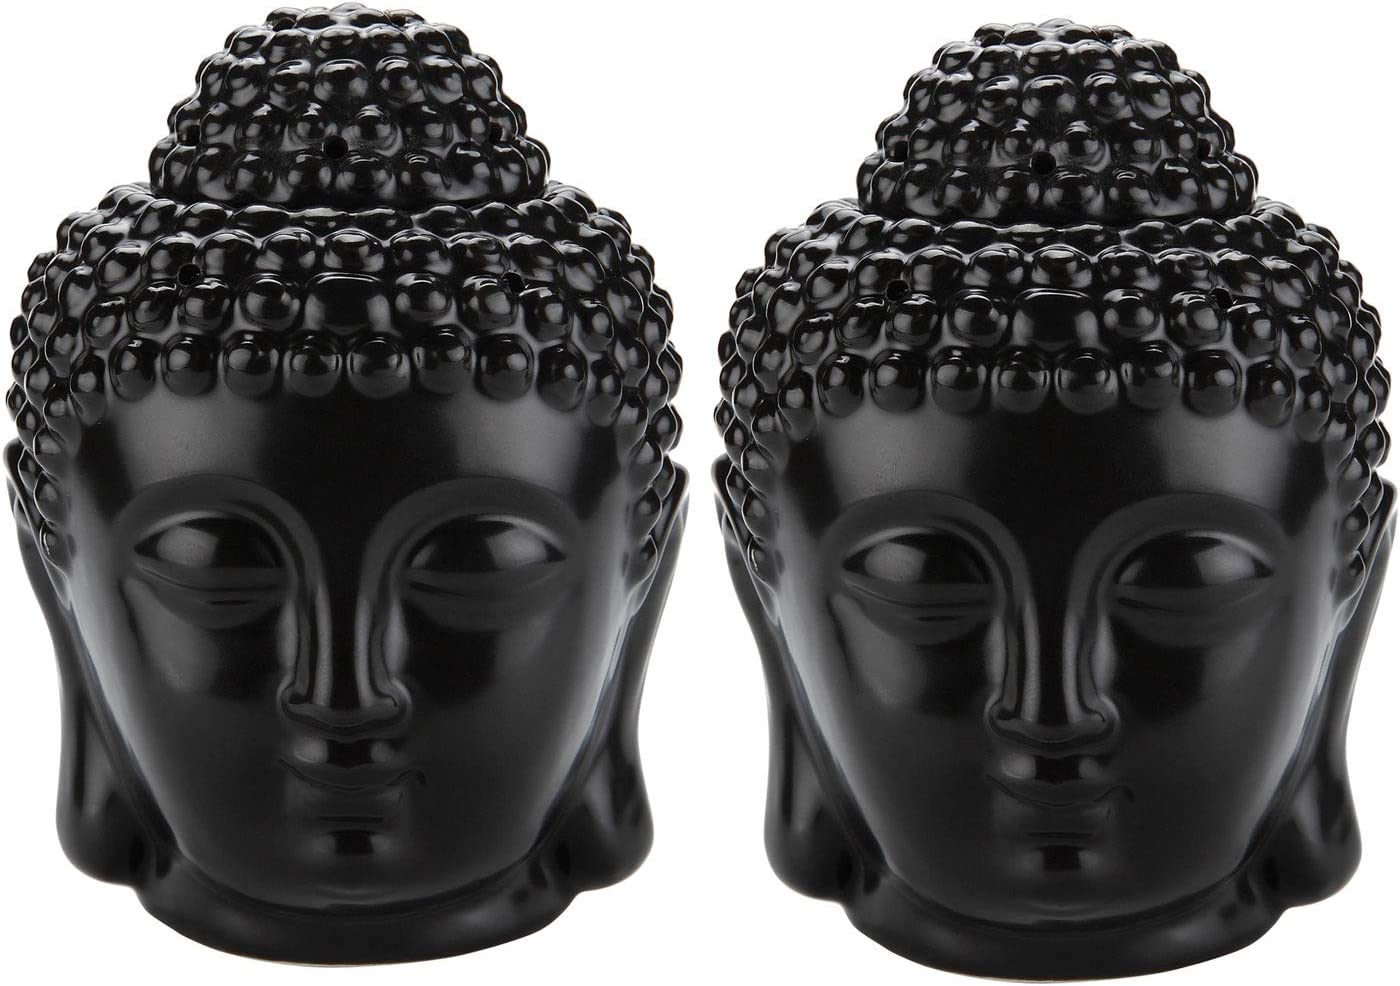 ComSaf Ceramic Buddha Head Essential Oil Burner with Candle Spoon Black, Aromatherapy Wax Melt Burners Oil Diffuser Tealight Candle Holders Buddha Ornament for Yoga Spa Home Bedroom Decor Gift